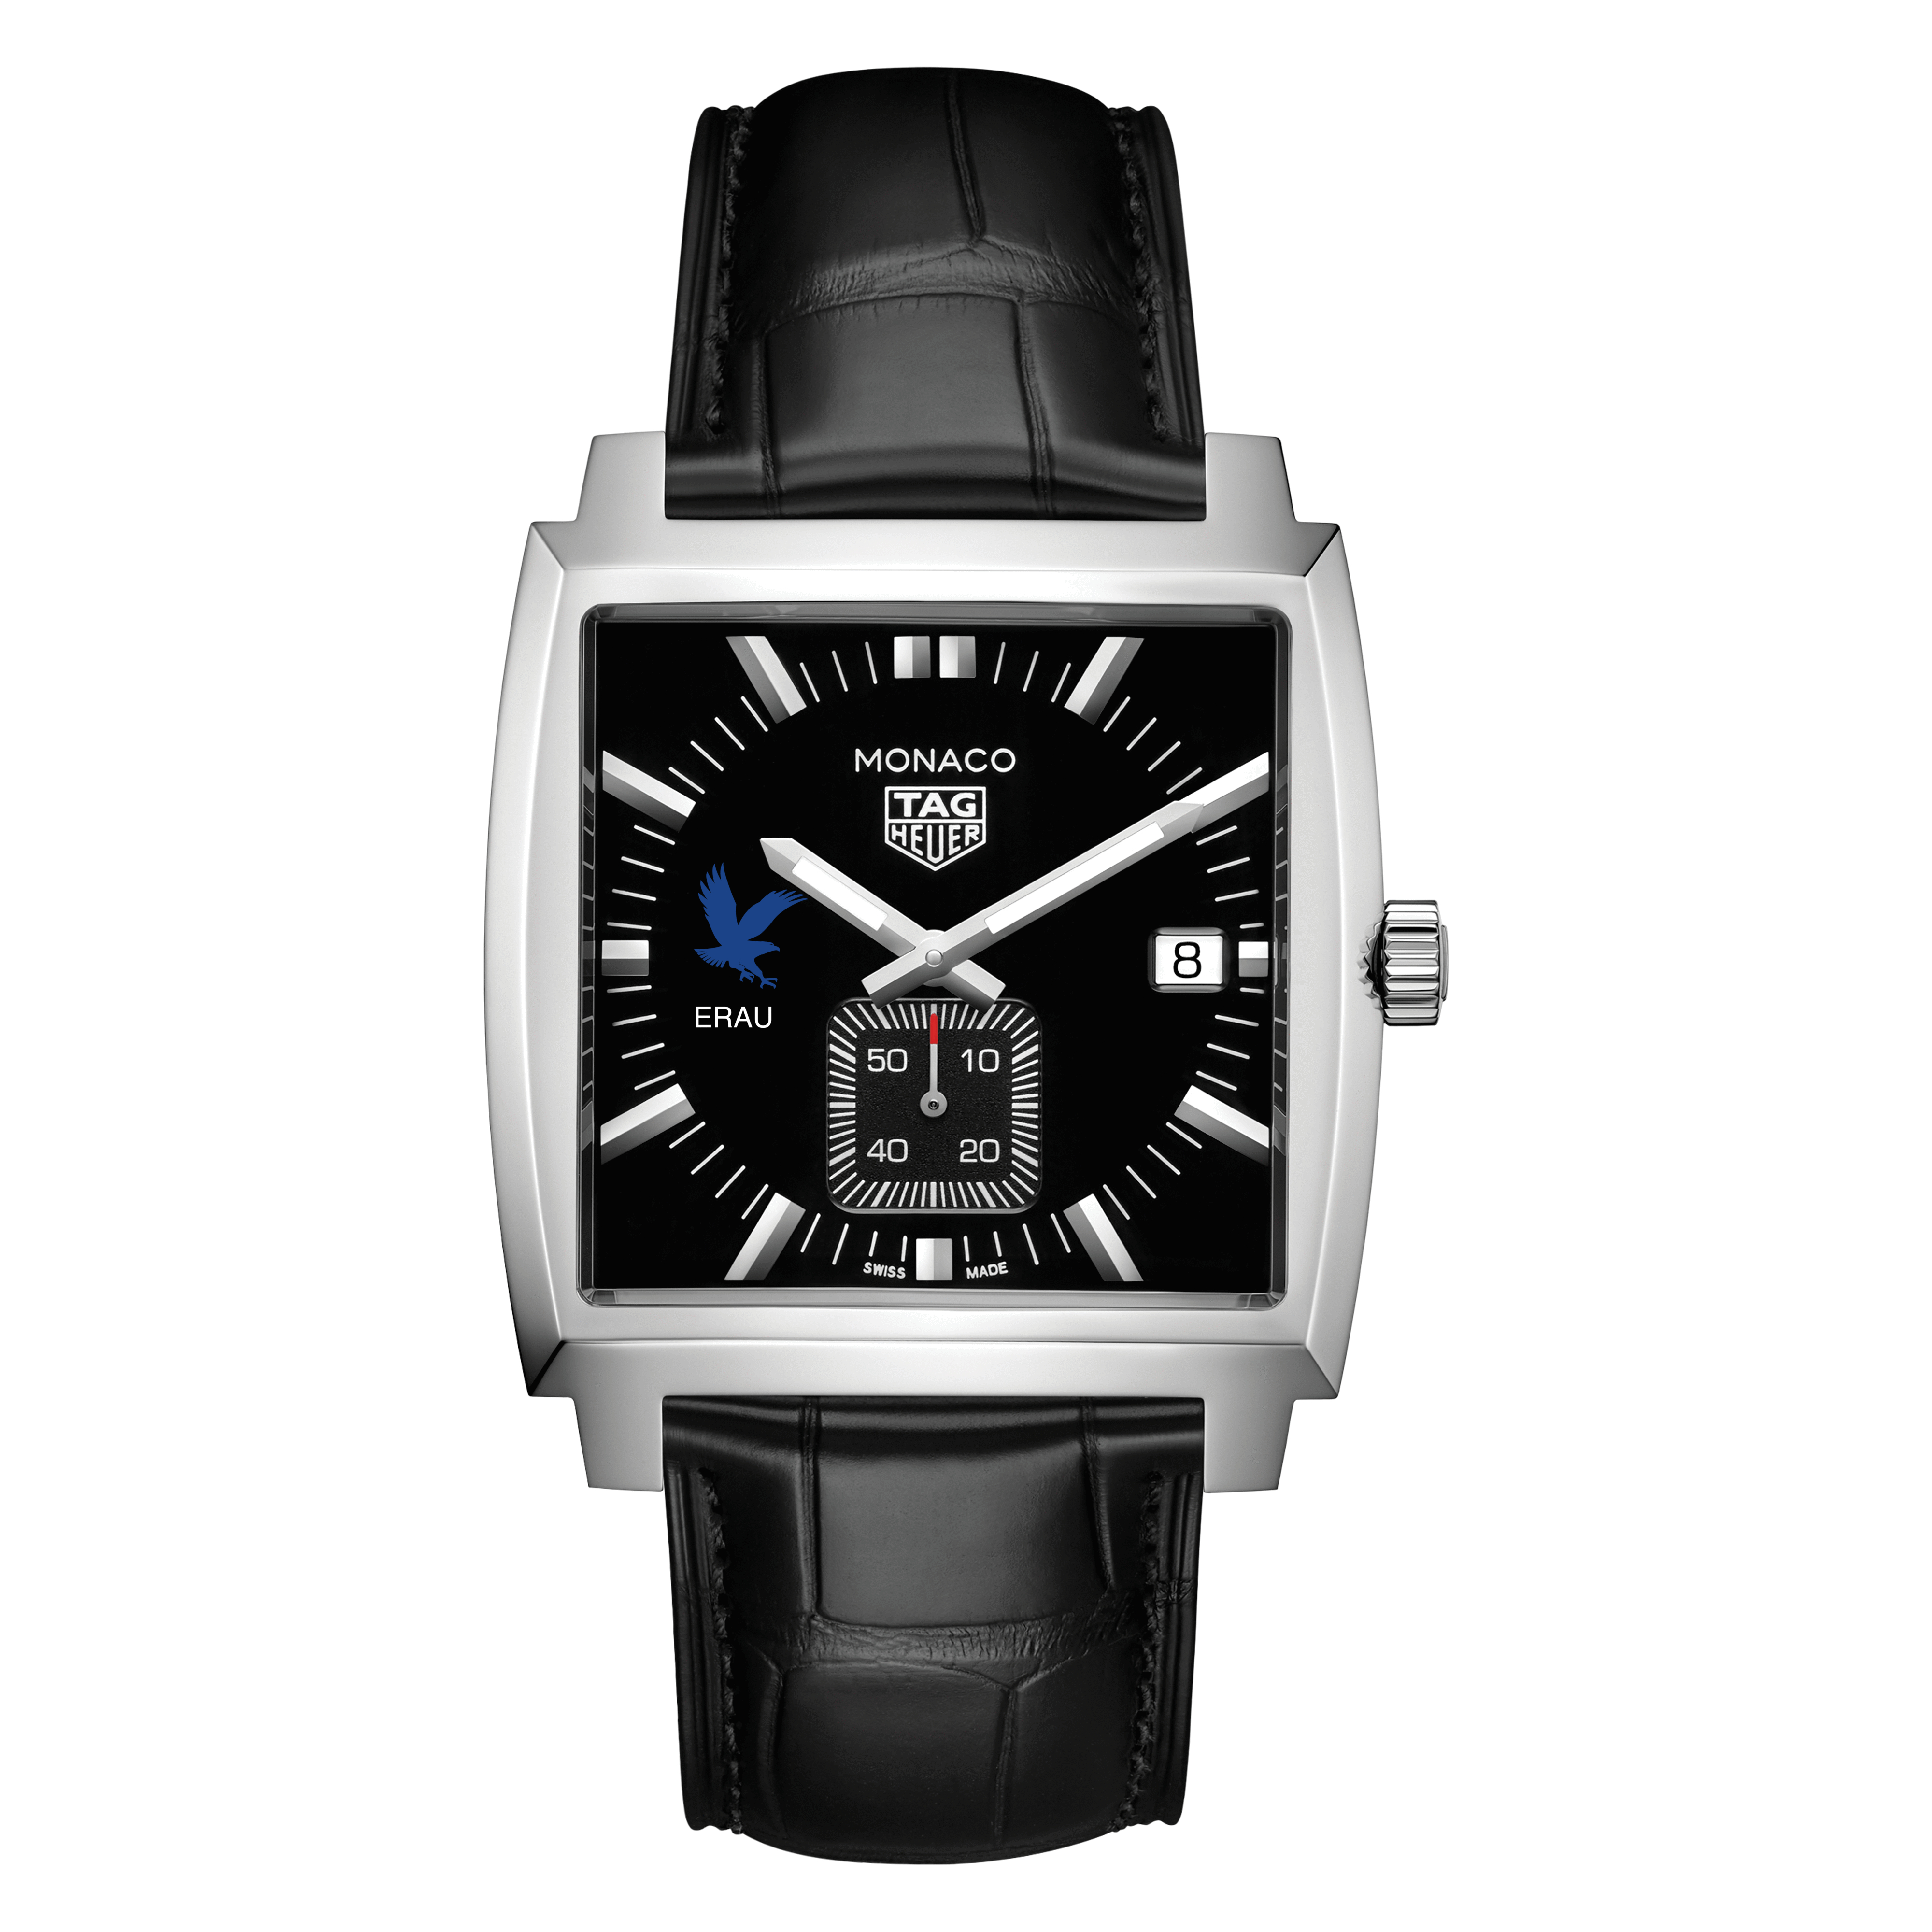 Embry-Riddle TAG Heuer Monaco with Quartz Movement for Men - Image 2